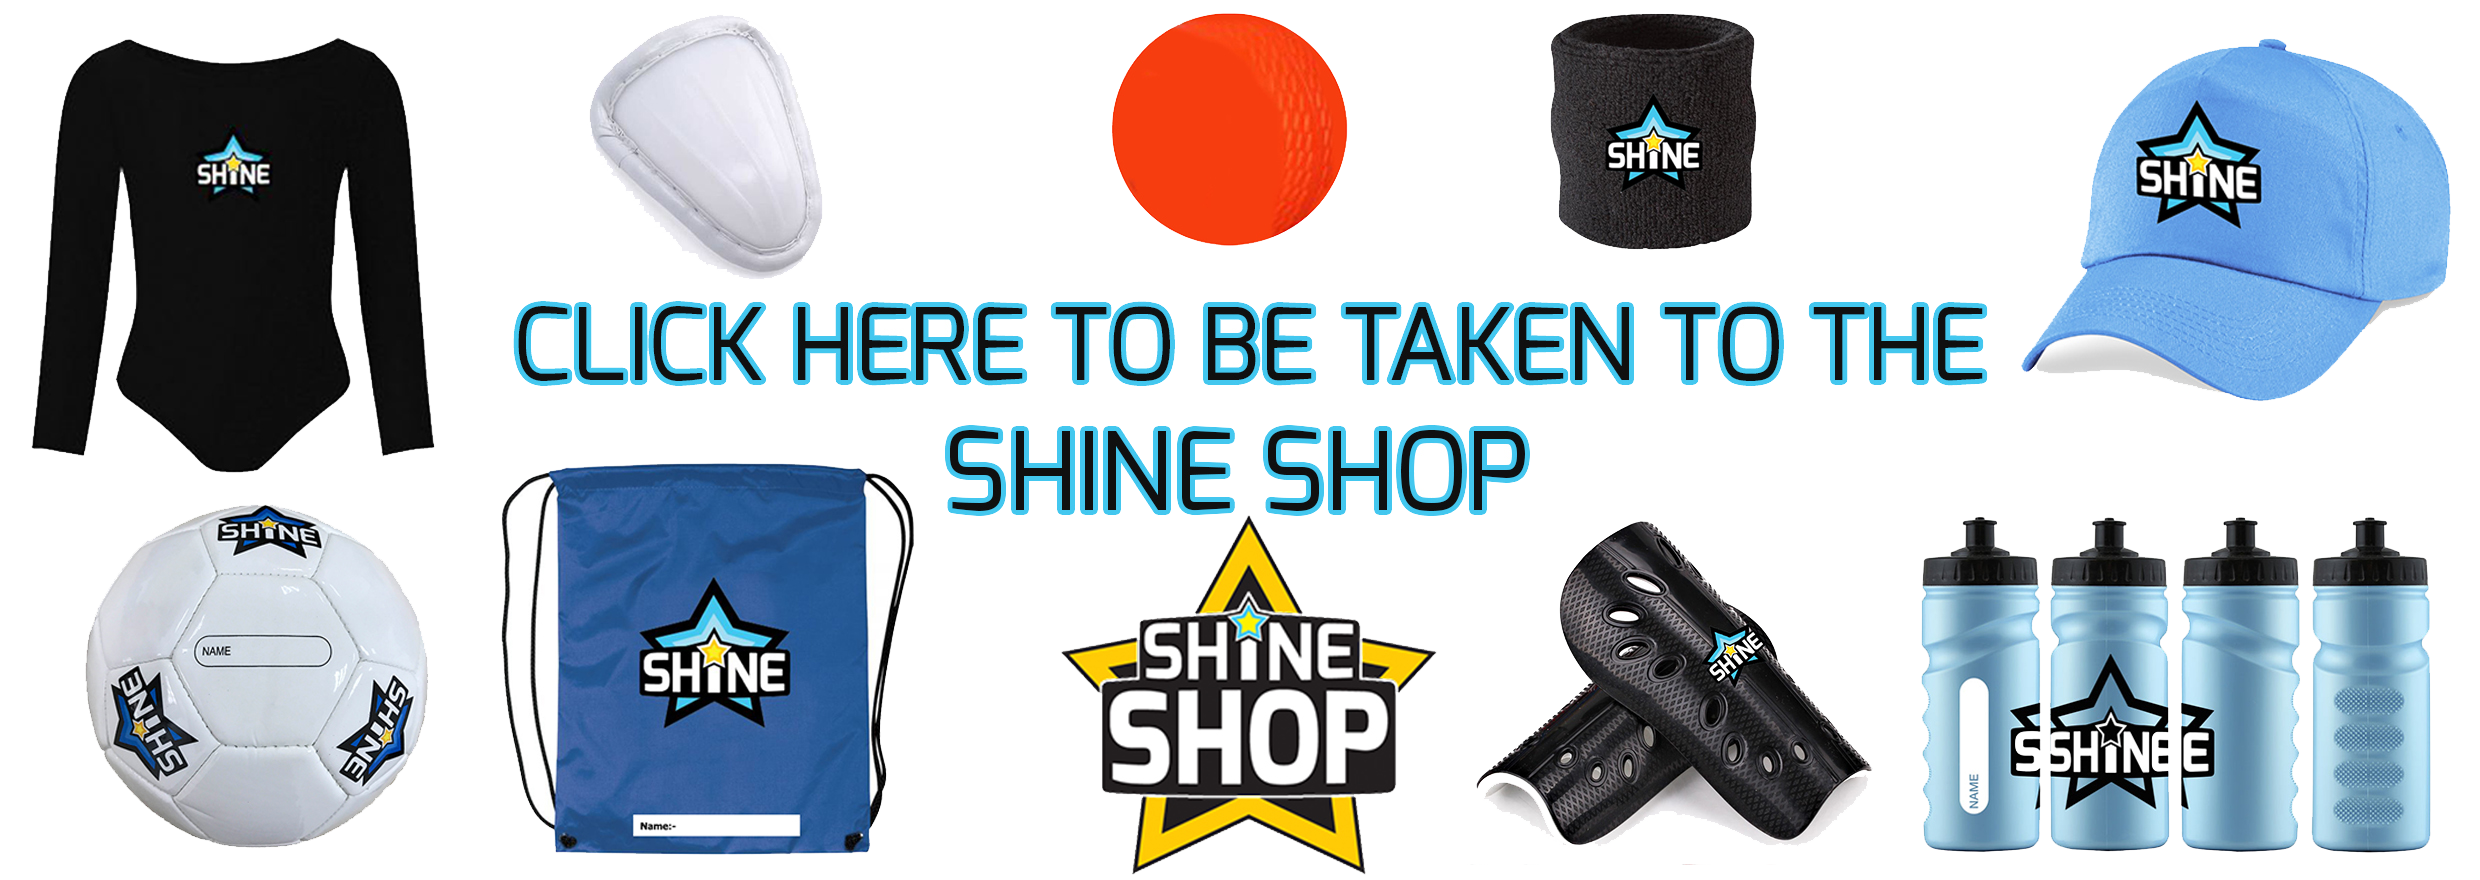 Click here to be taken to the Shine Shop